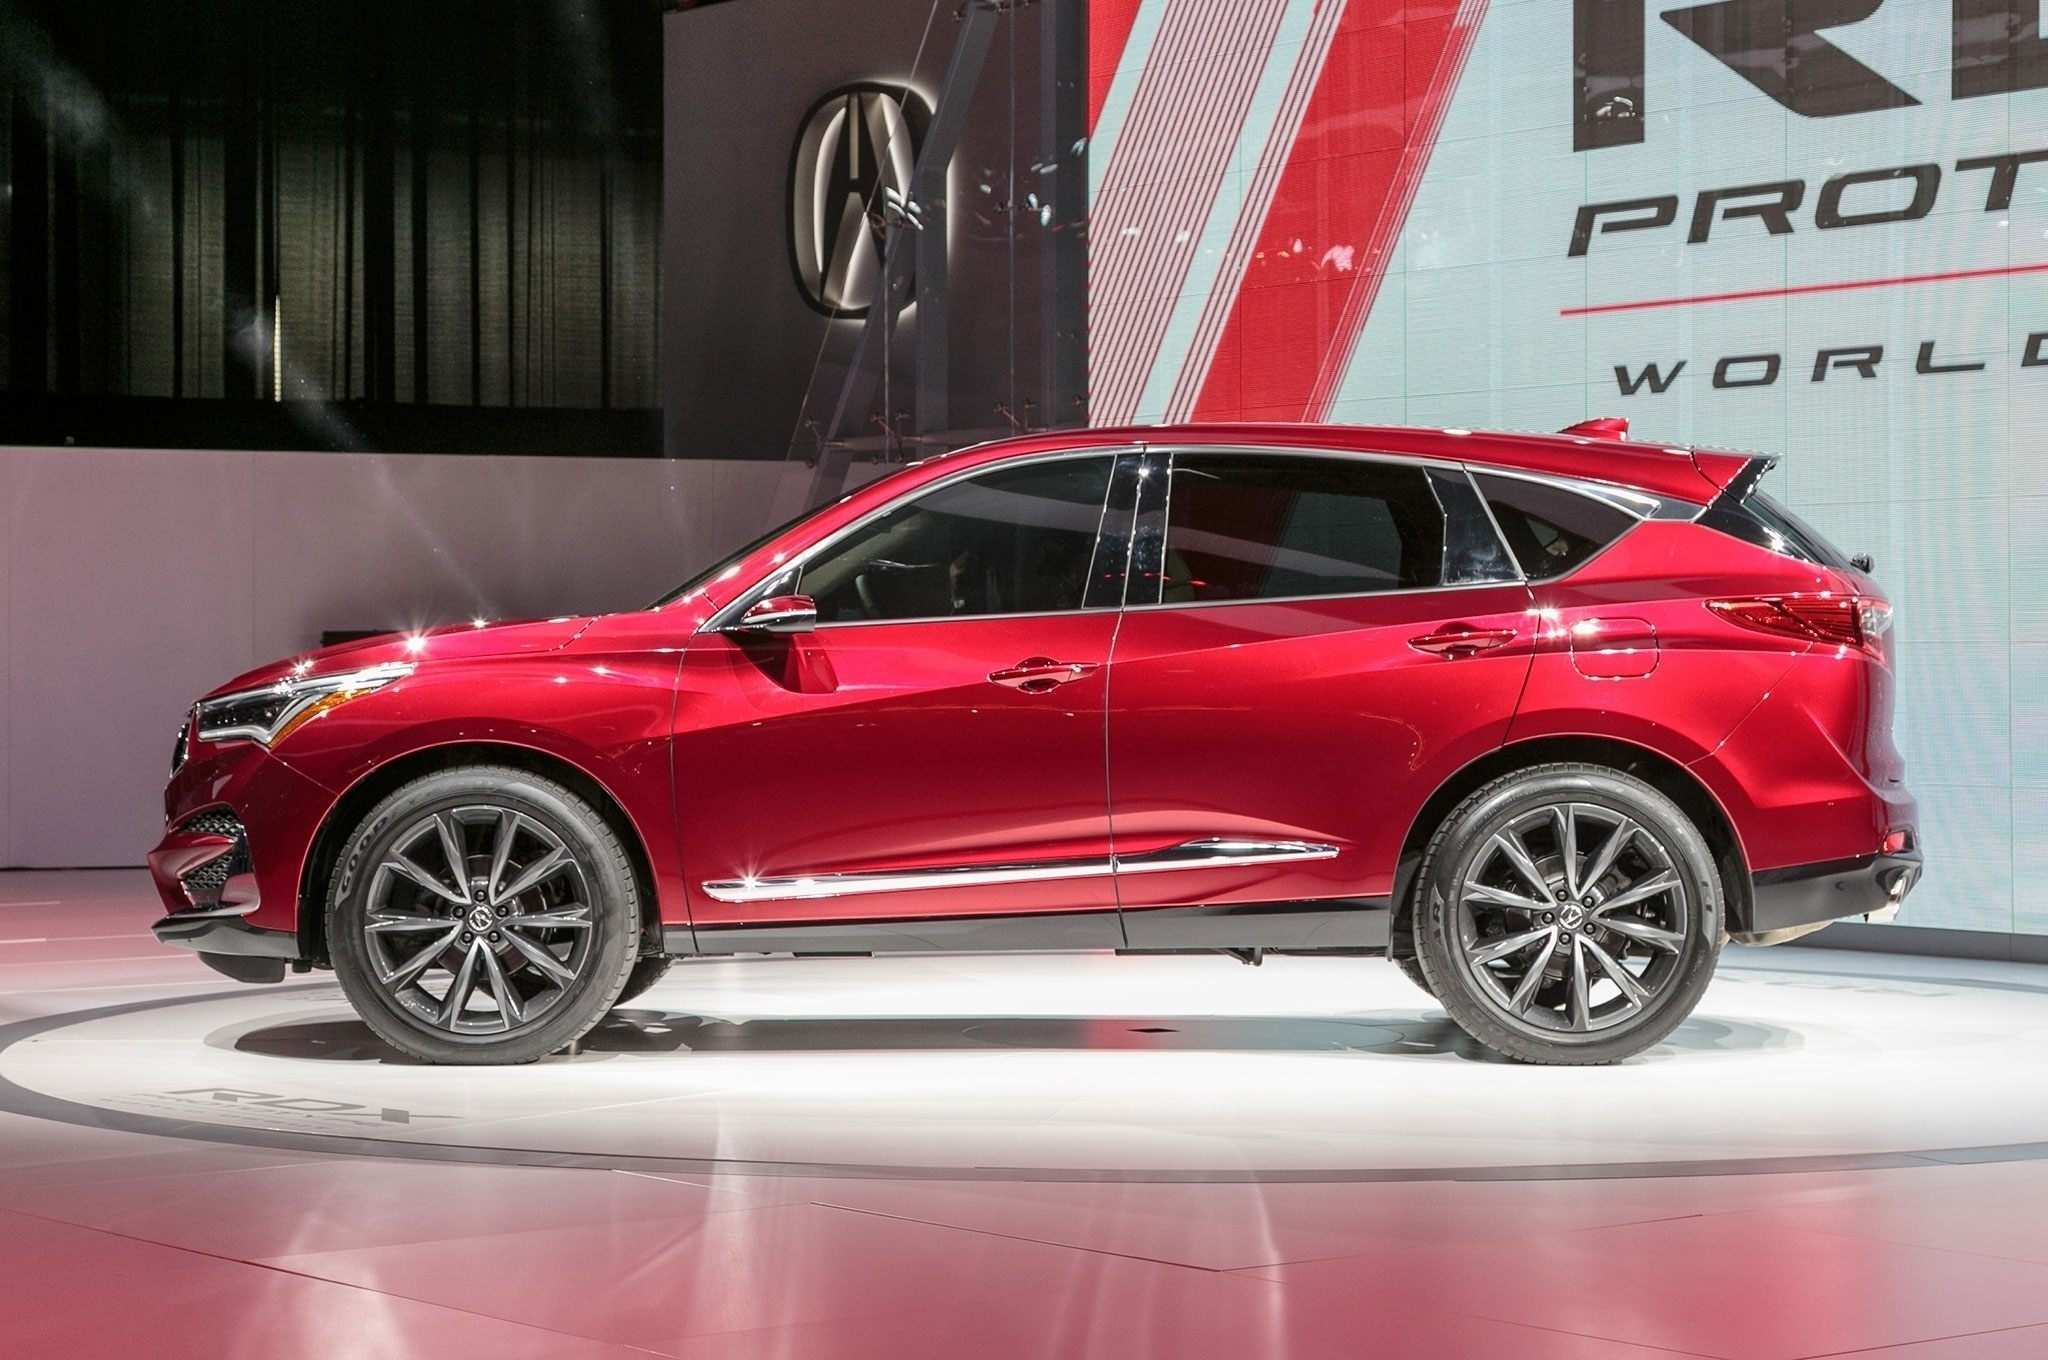 64 All New Best Acura Wagon 2019 Specs Model with Best Acura Wagon 2019 Specs